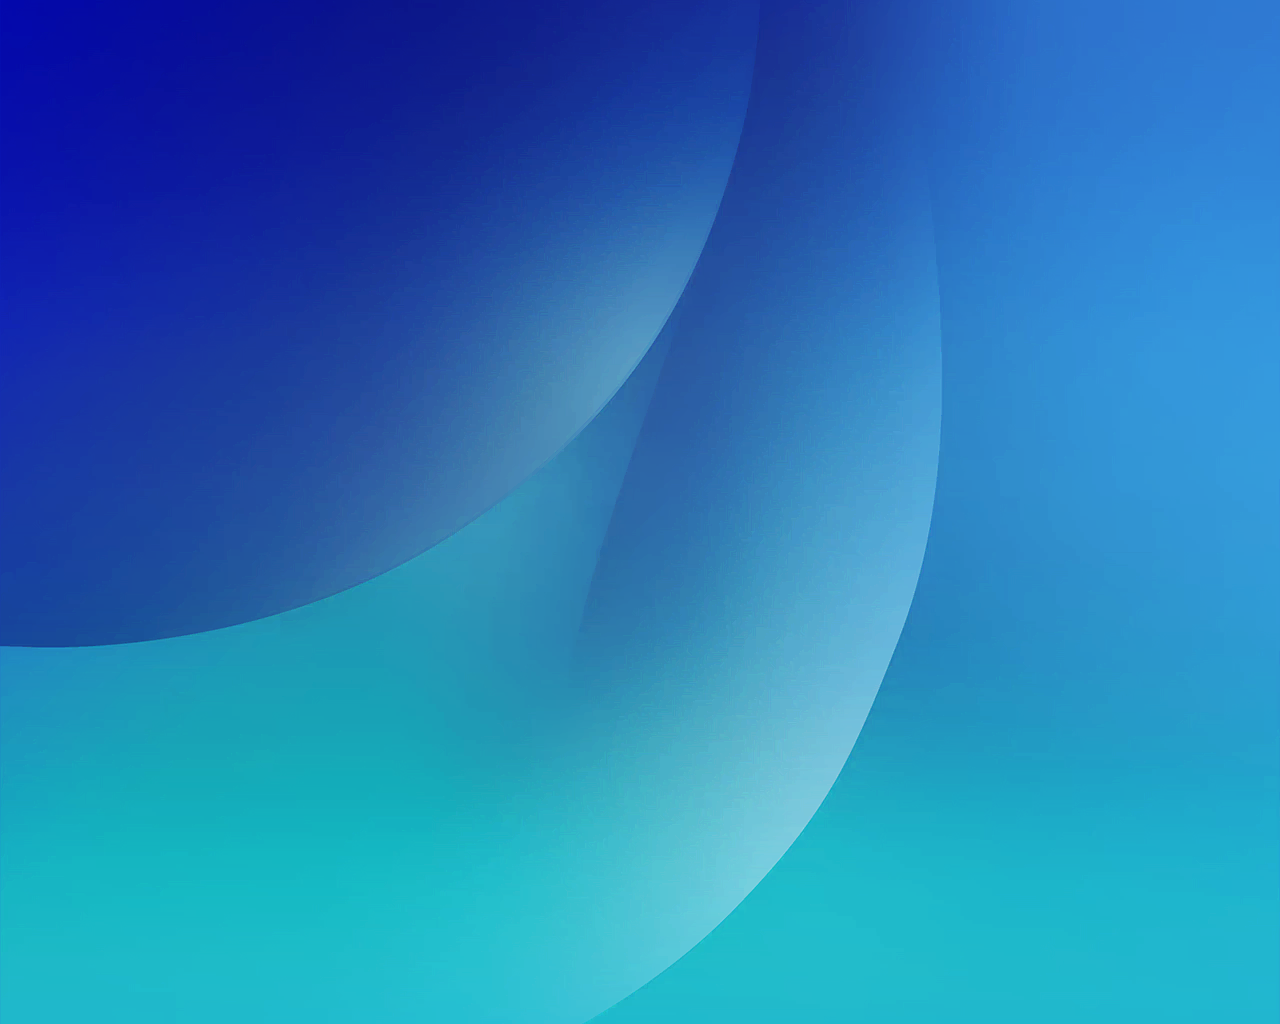 Free Download Samsung Galaxy J1 Mini Prime Exclusive Stock Wallpapers 1280x1280 For Your Desktop Mobile Tablet Explore 93 Samsung Galaxy J5 Prime Wallpapers Samsung Galaxy J5 Prime Wallpapers Samsung